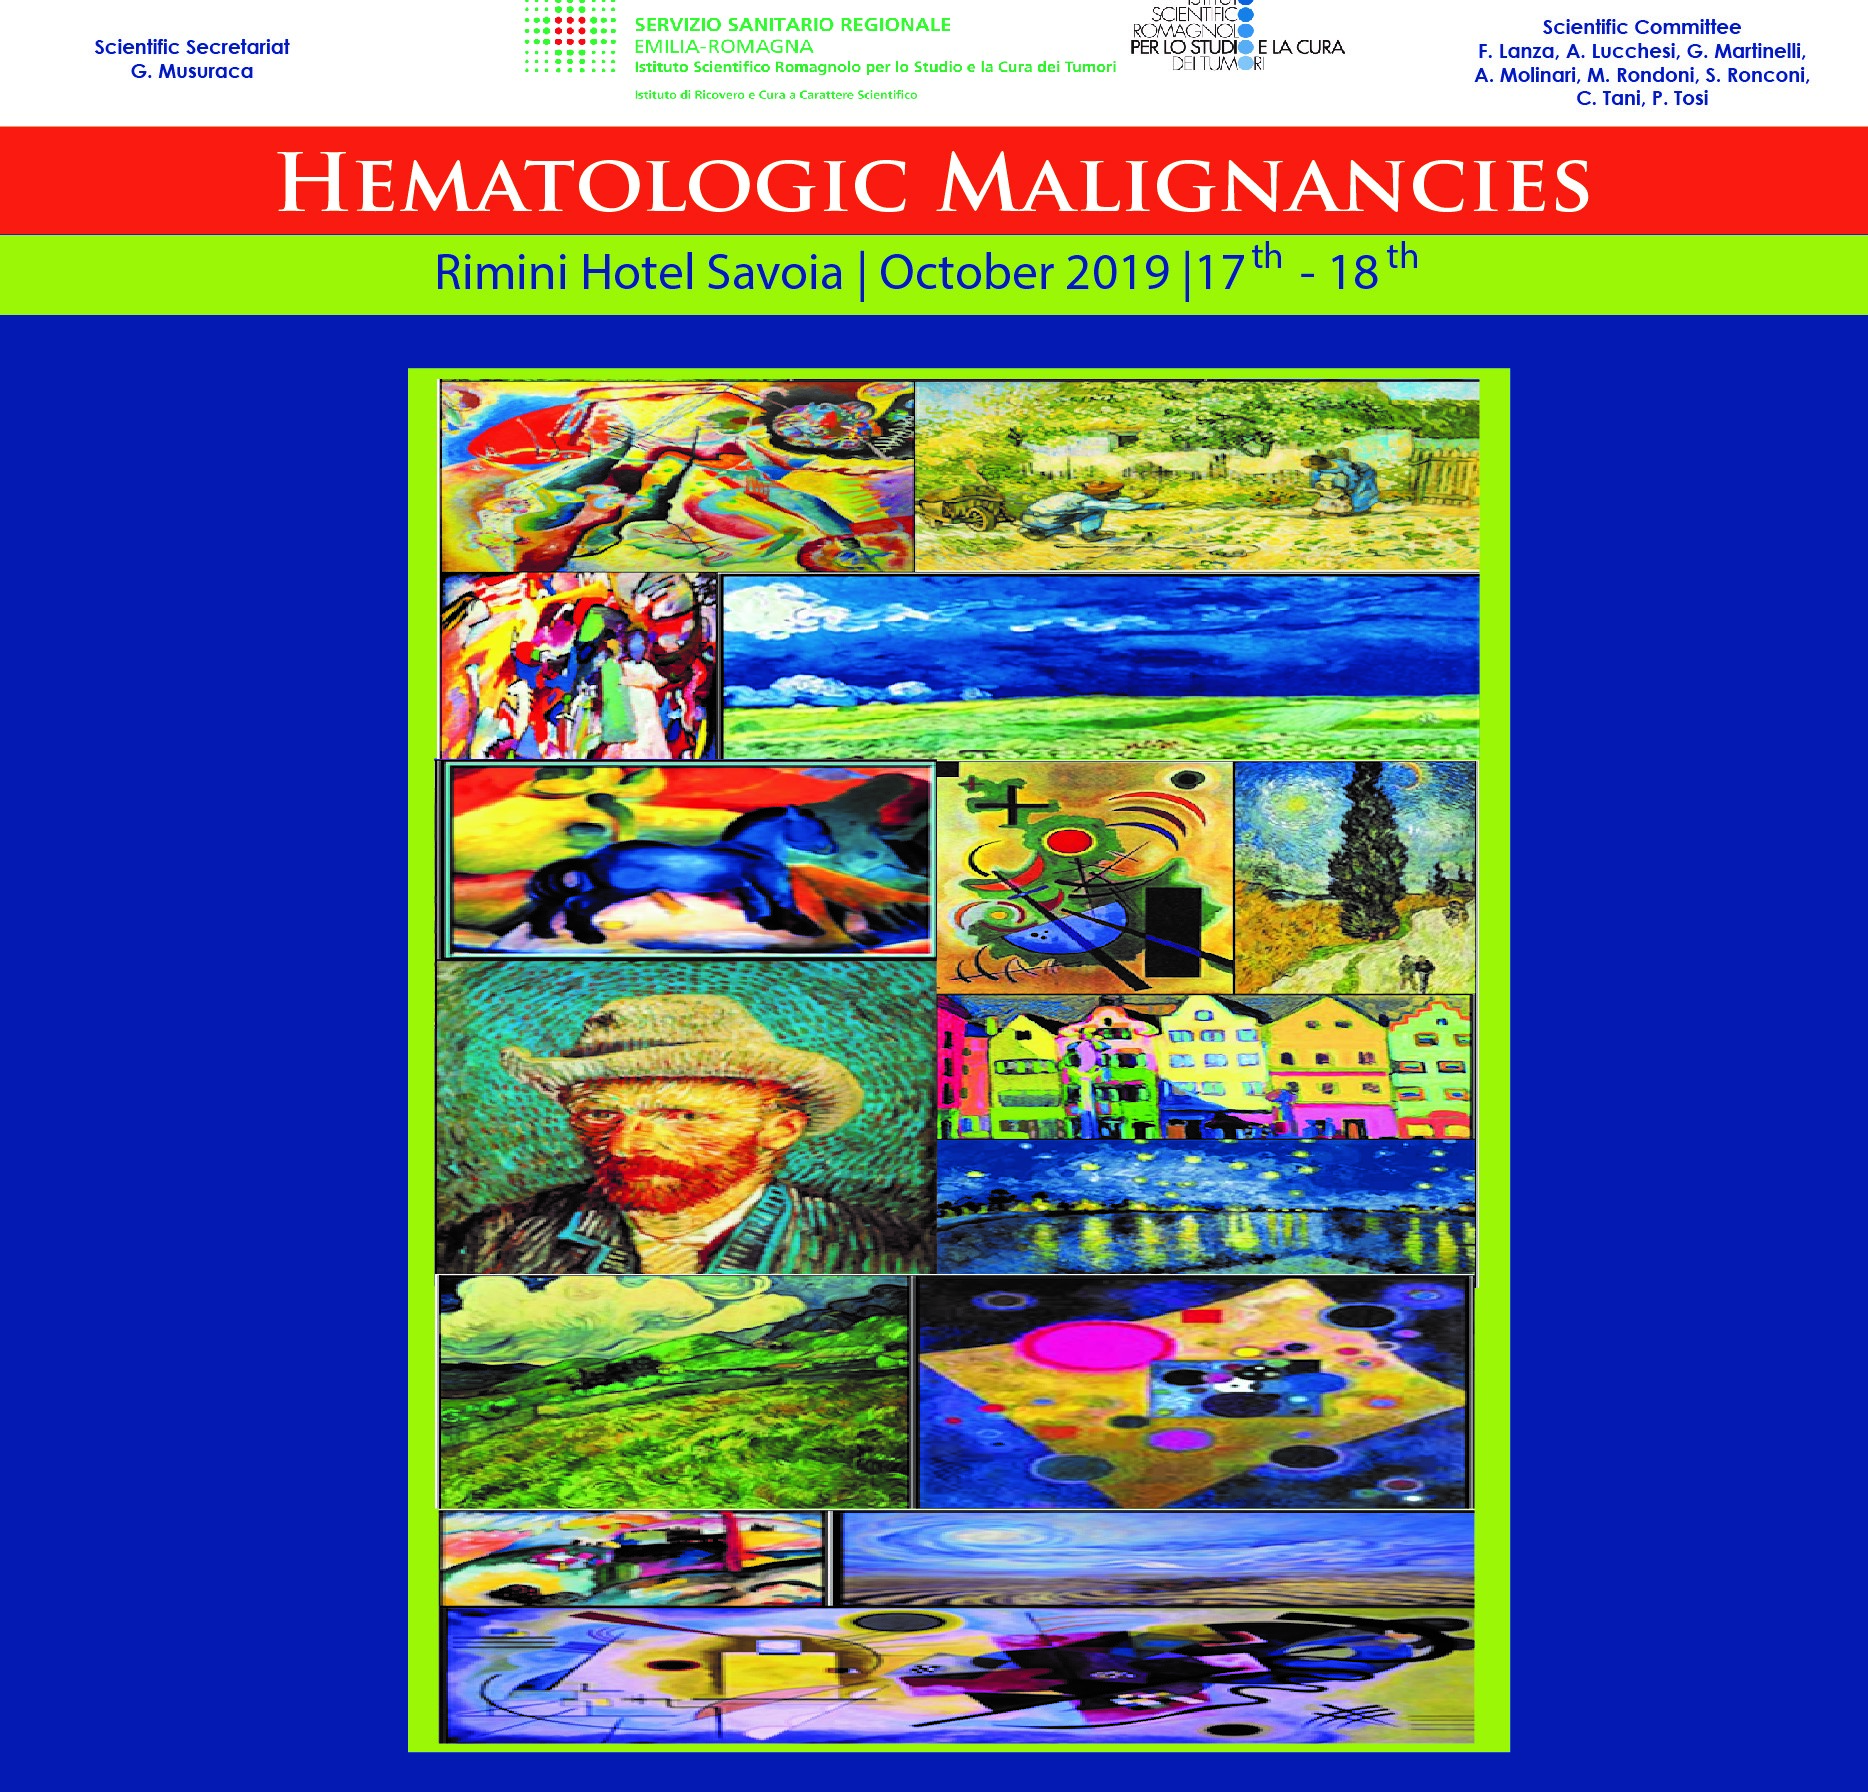 HEMATOLOGIC MALIGNANCIES